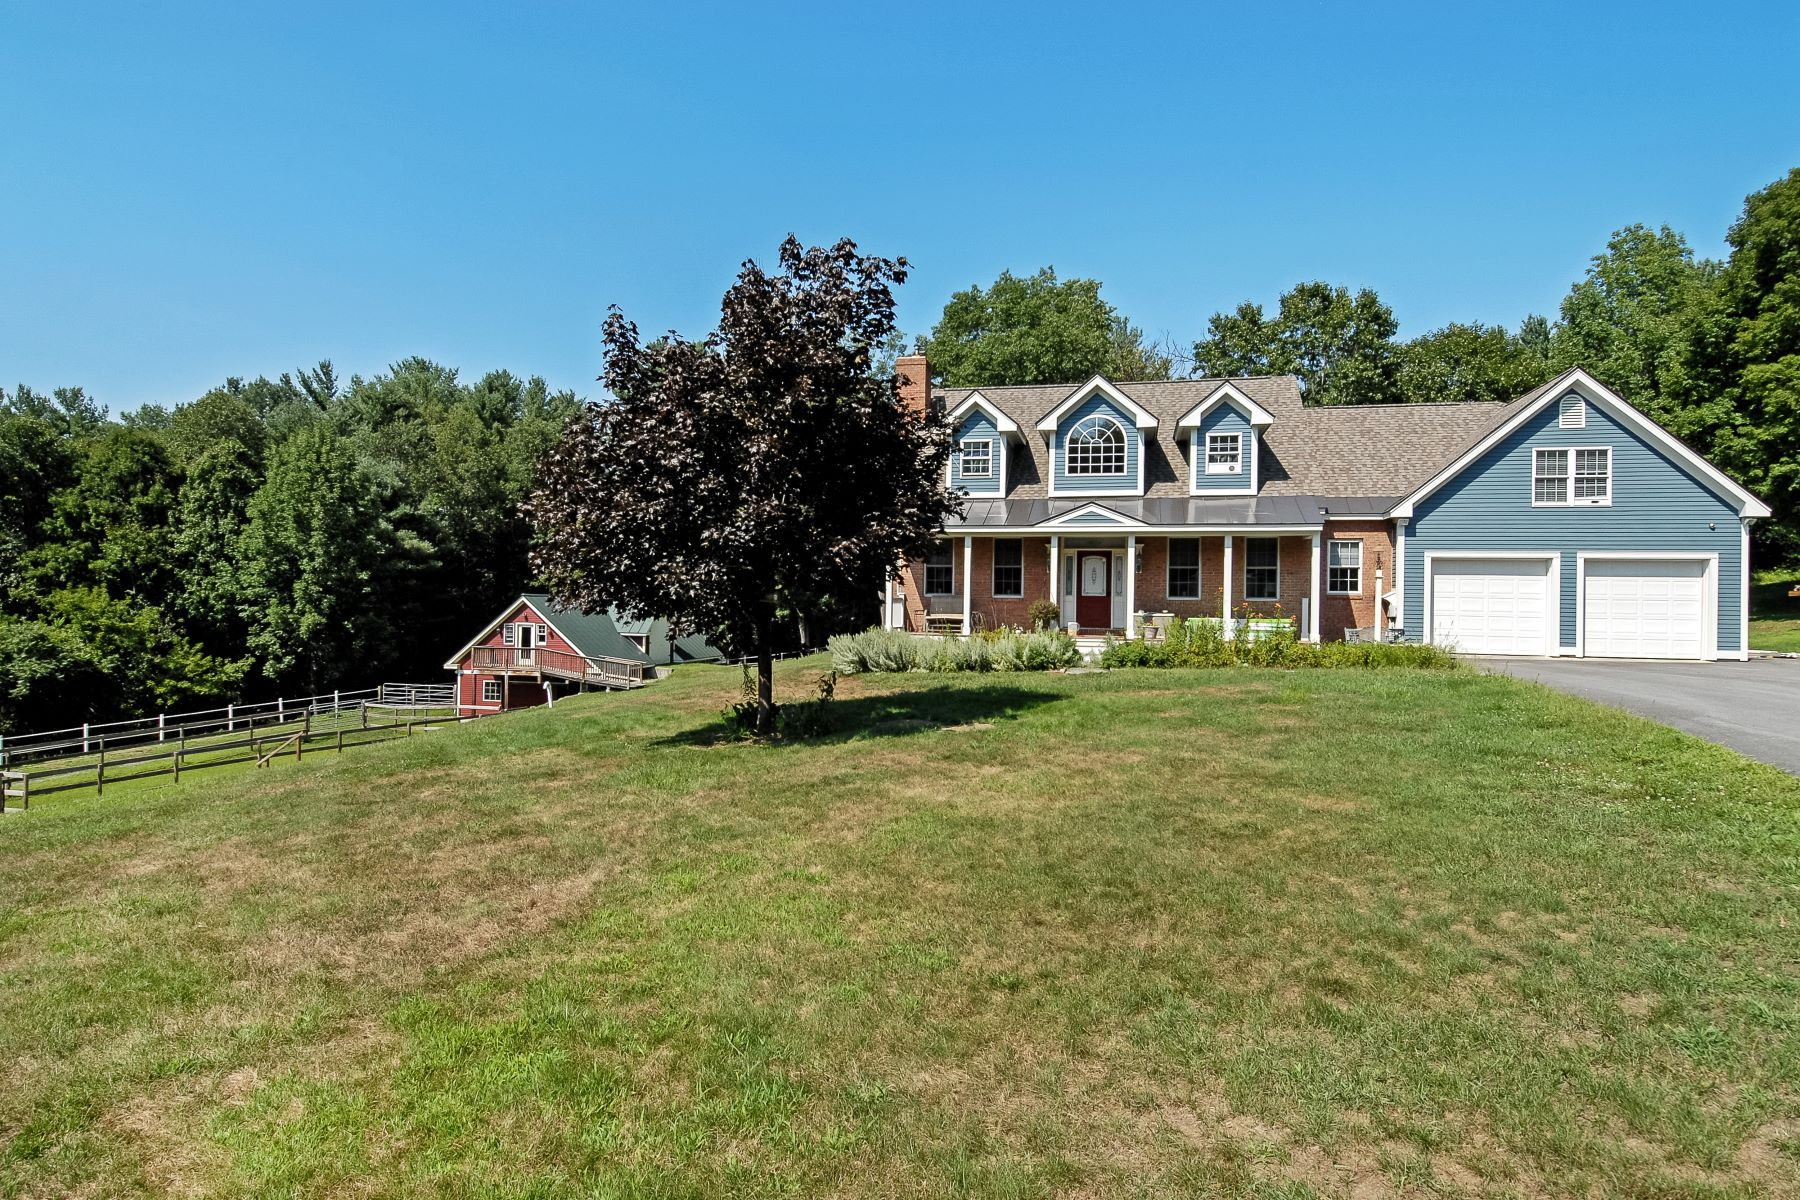 Single Family Home for Sale at Freeman Road Farm 500 Freeman Rd, Plainfield, New Hampshire, 03781 United States